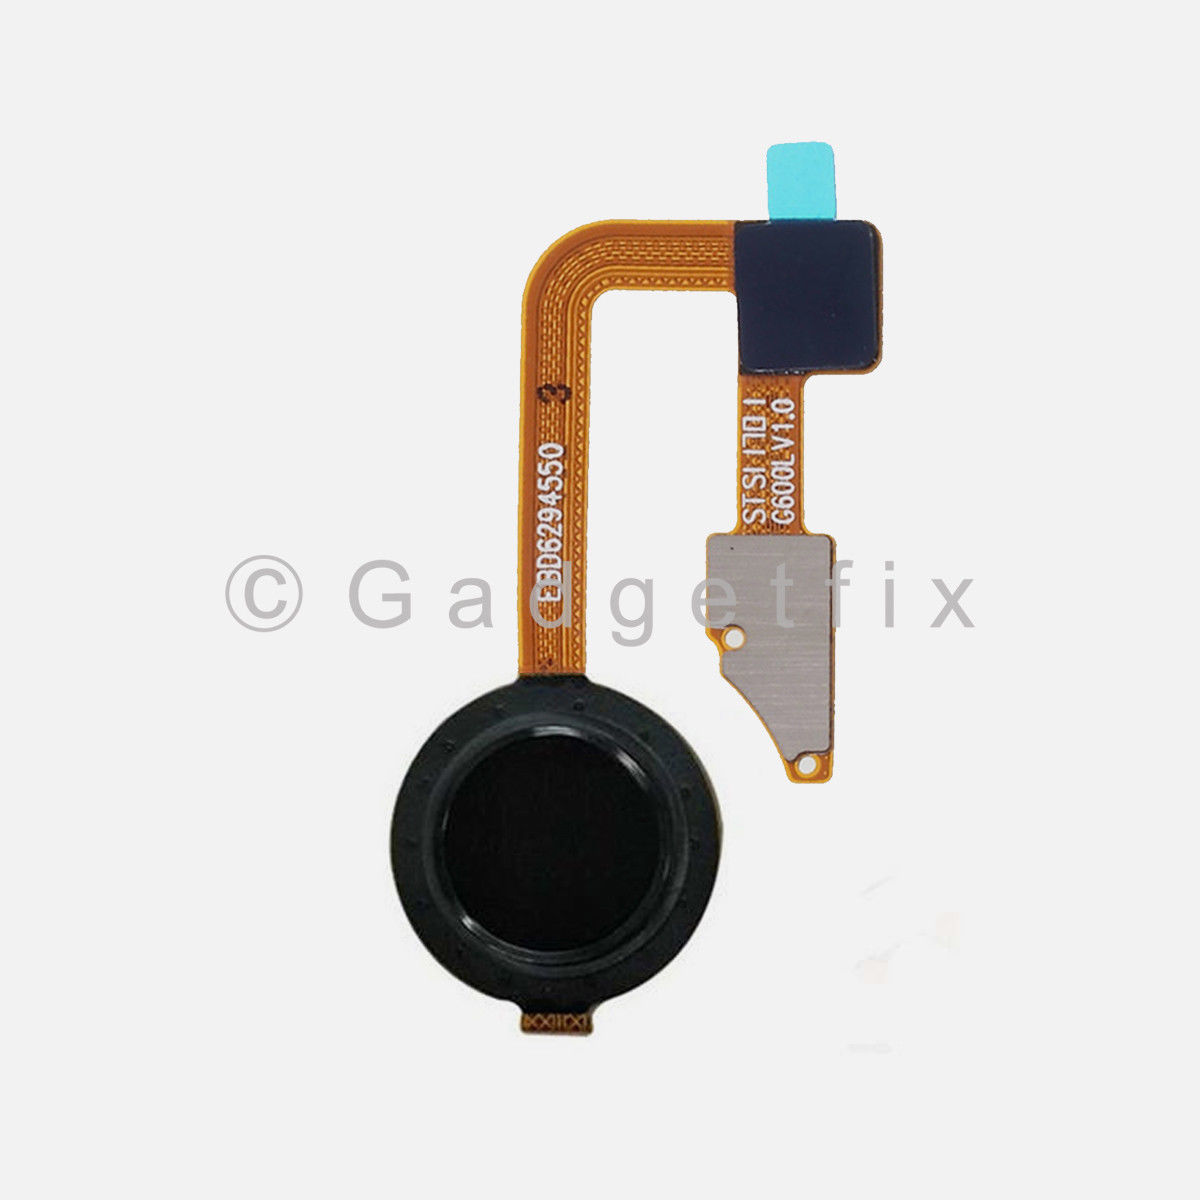 LG G6 H870 H871 H872 Power Button Home Button Fingerprint Sensor Flex Cable